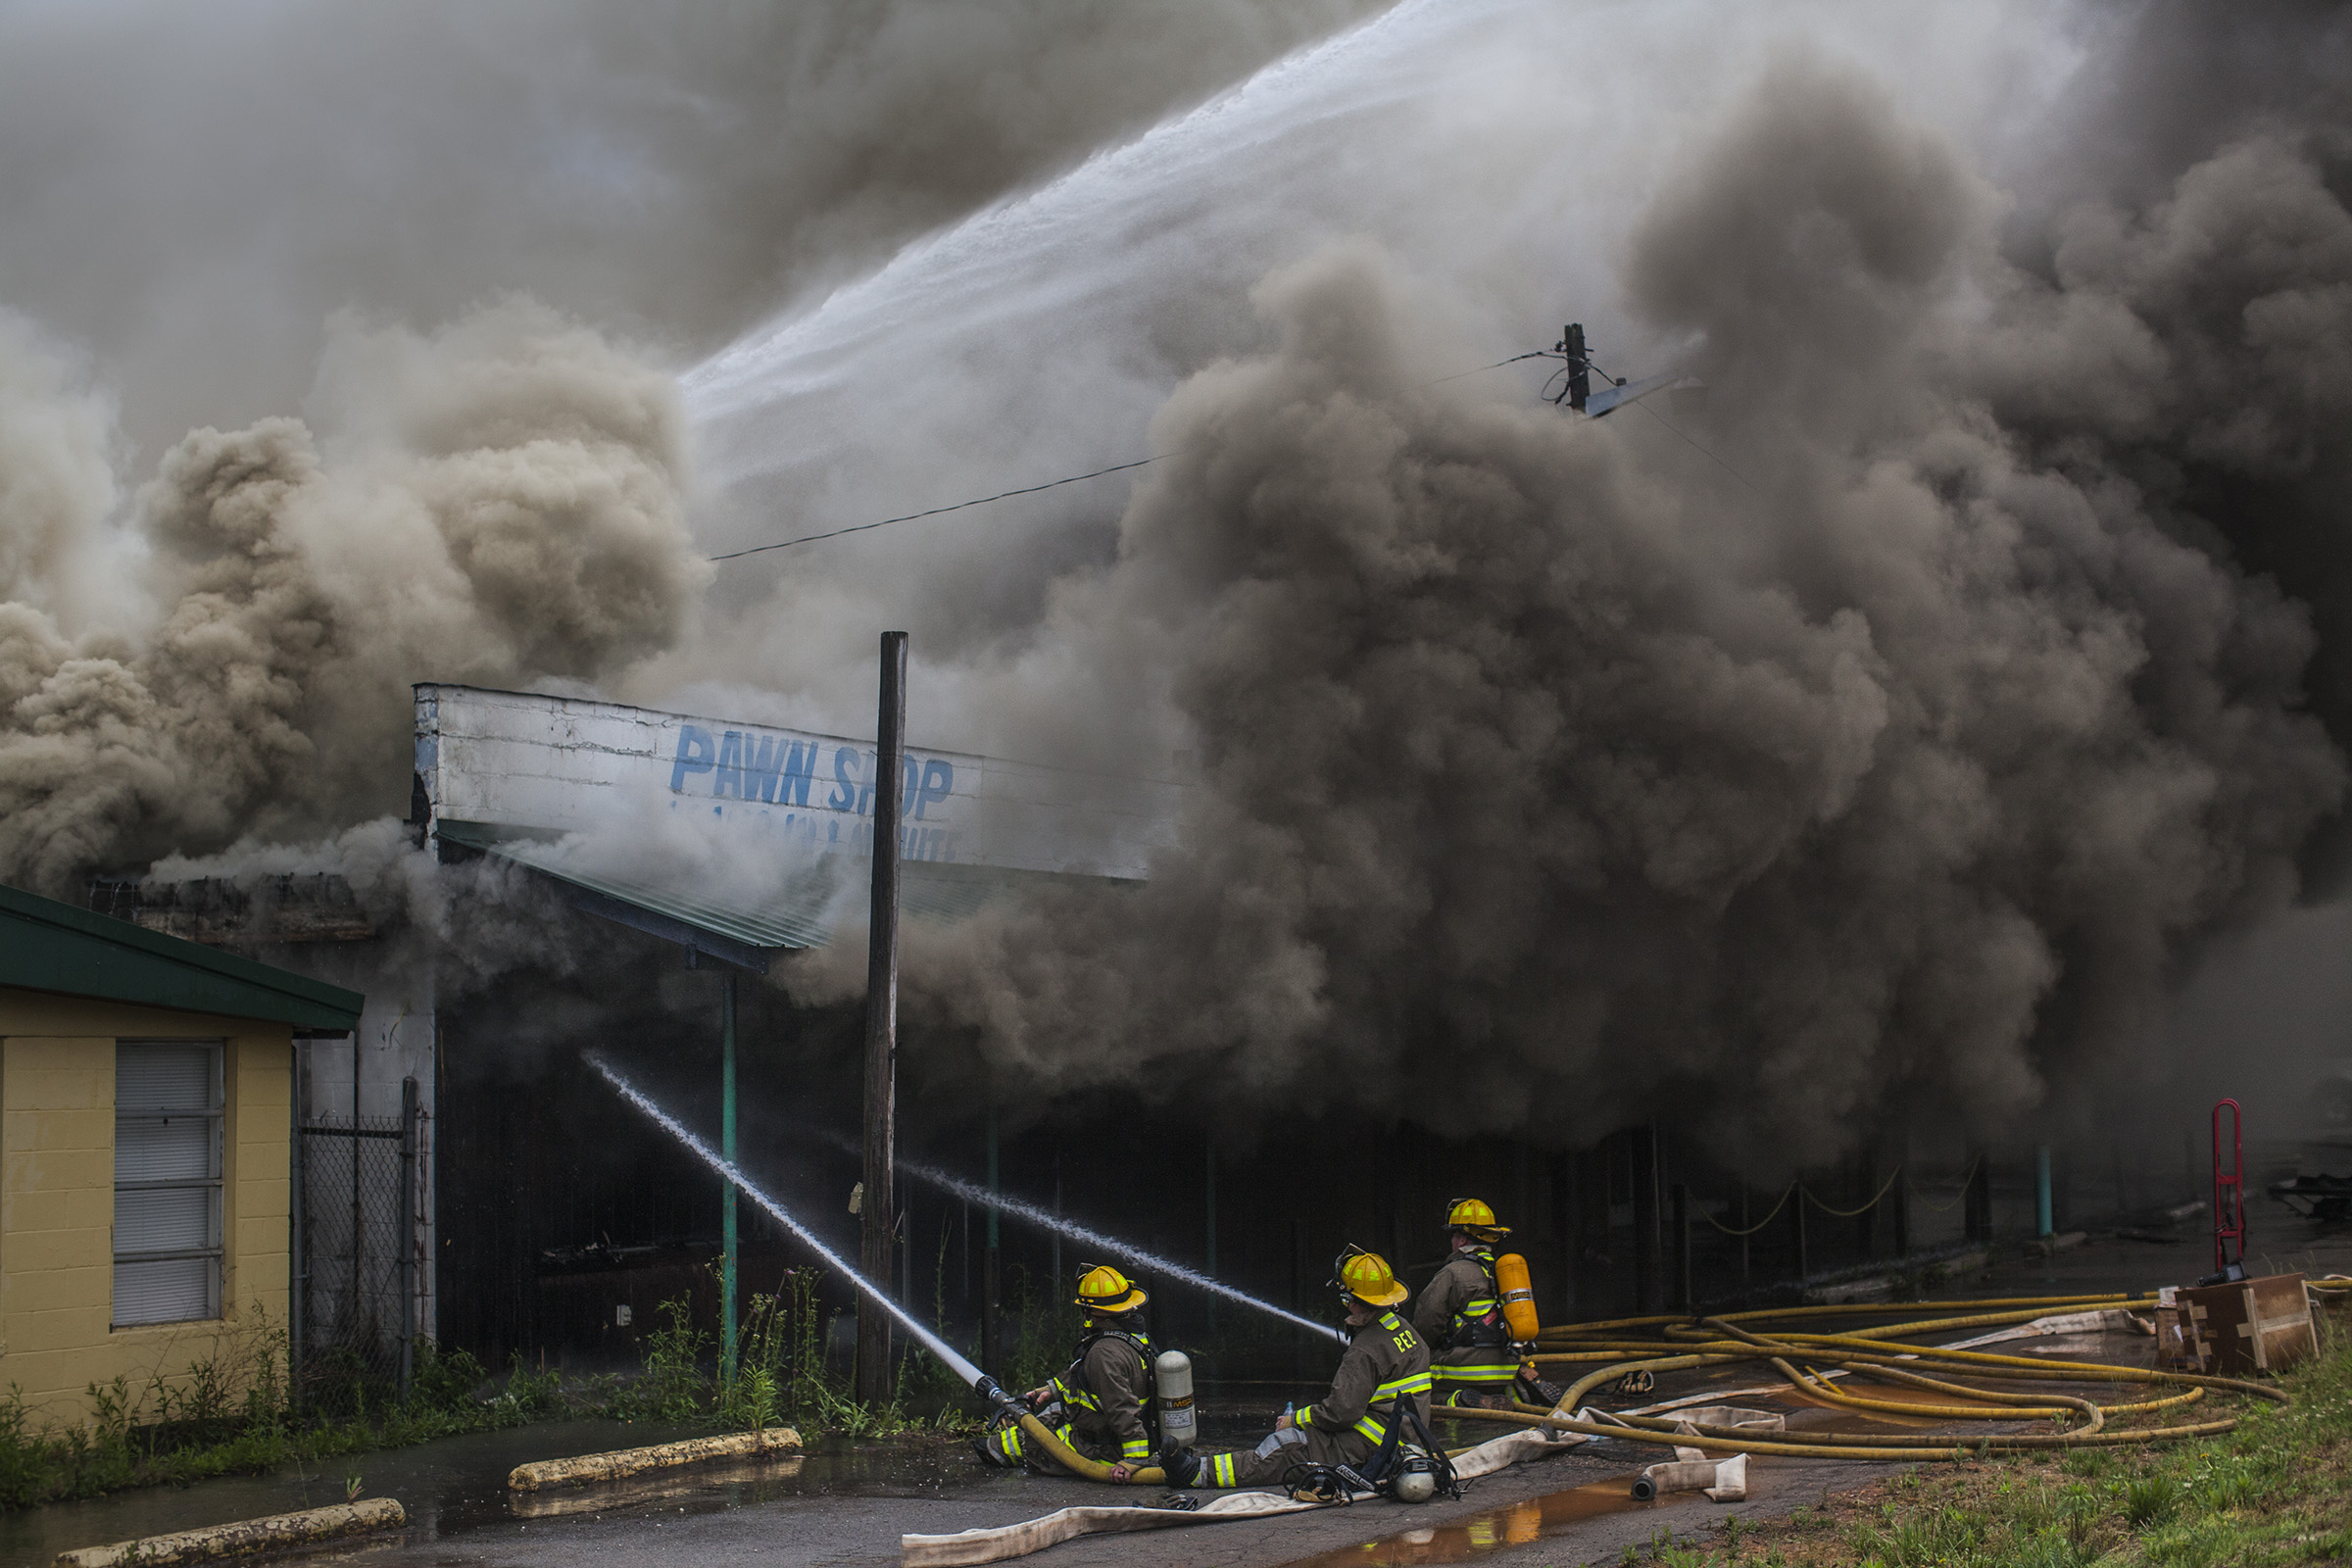 Firefighters from Portland, Tenn., and Franklin, Ky., work to put out a blaze at Dixie Discounts on Nashville Road on Thursday, May 12, 2016, in Franklin, Ky.